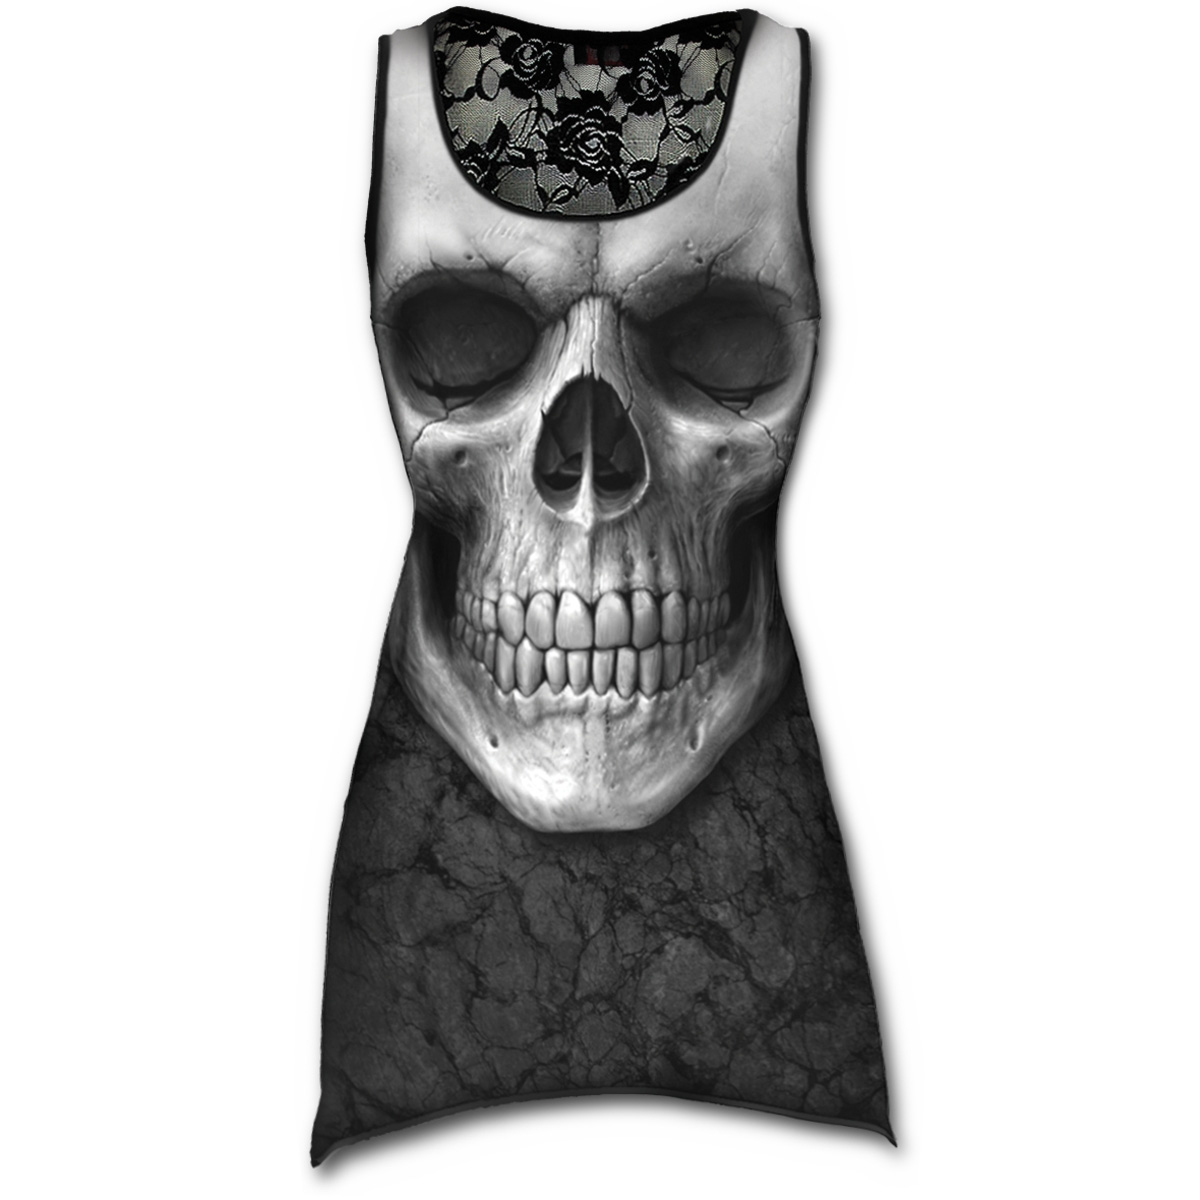 SPIRAL-DIRECT-Ladies-Black-Goth-SOLEMN-SKULL-Lace-Vest-Top-All-Sizes thumbnail 7